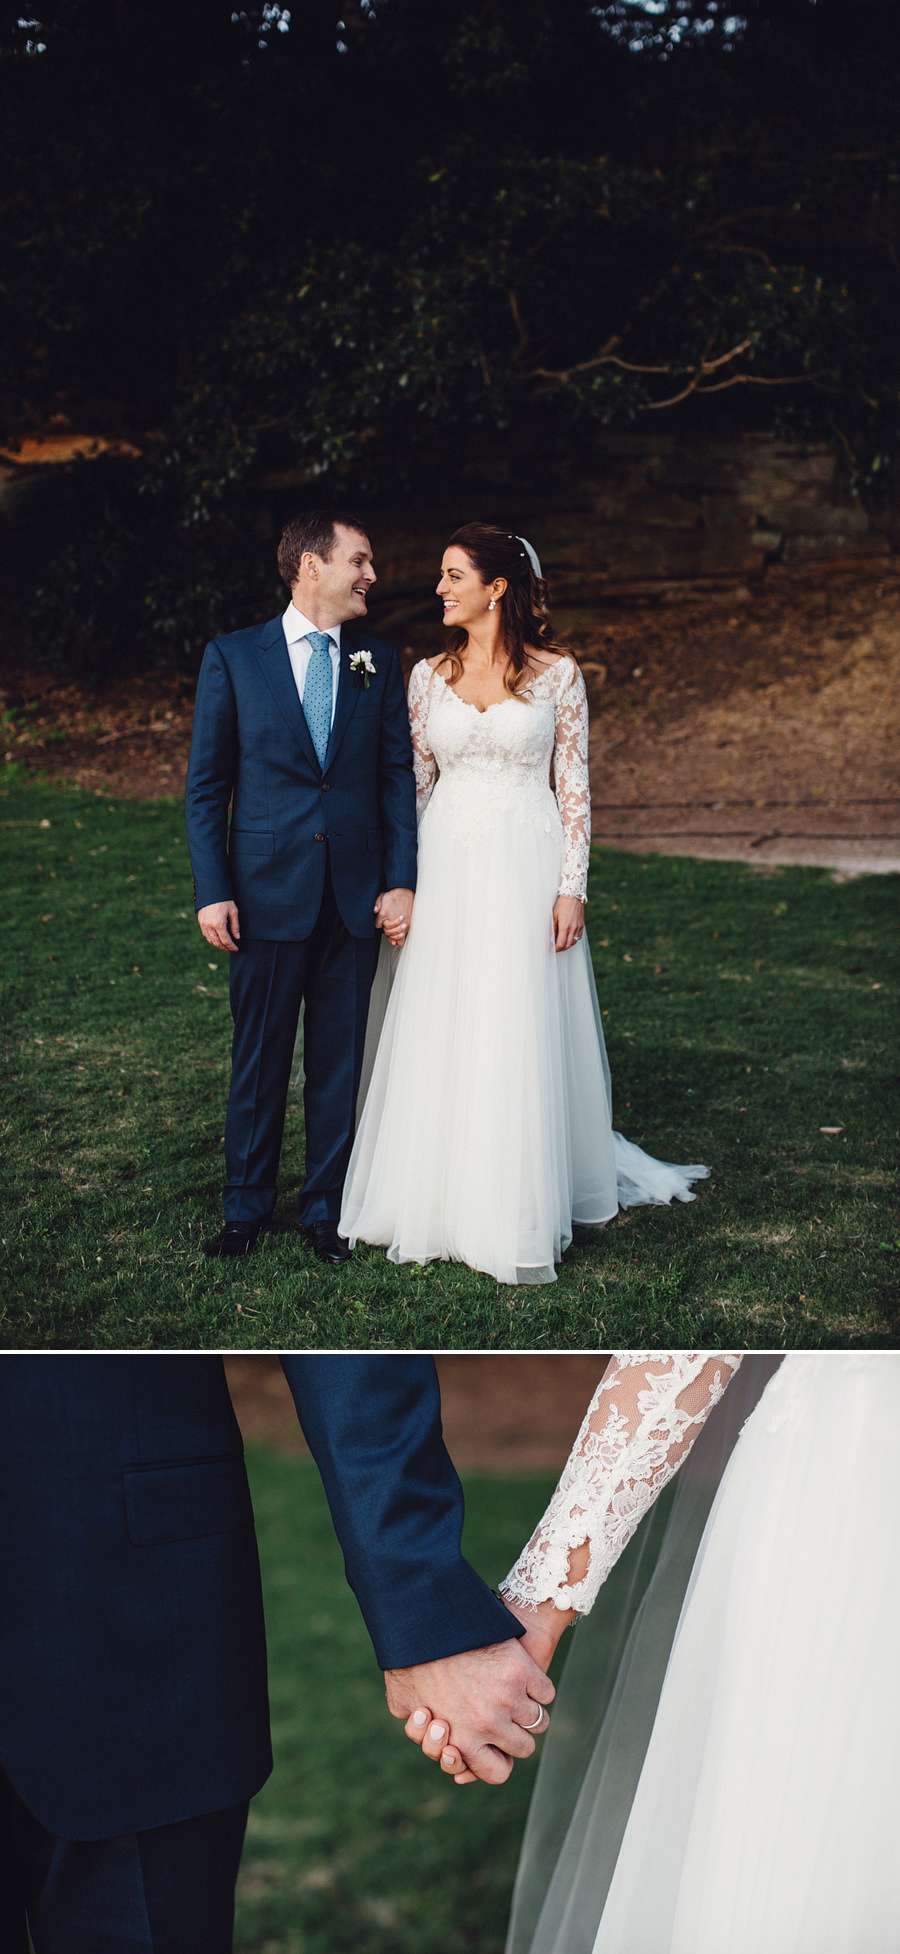 Sydney Wedding Photography: Portraits